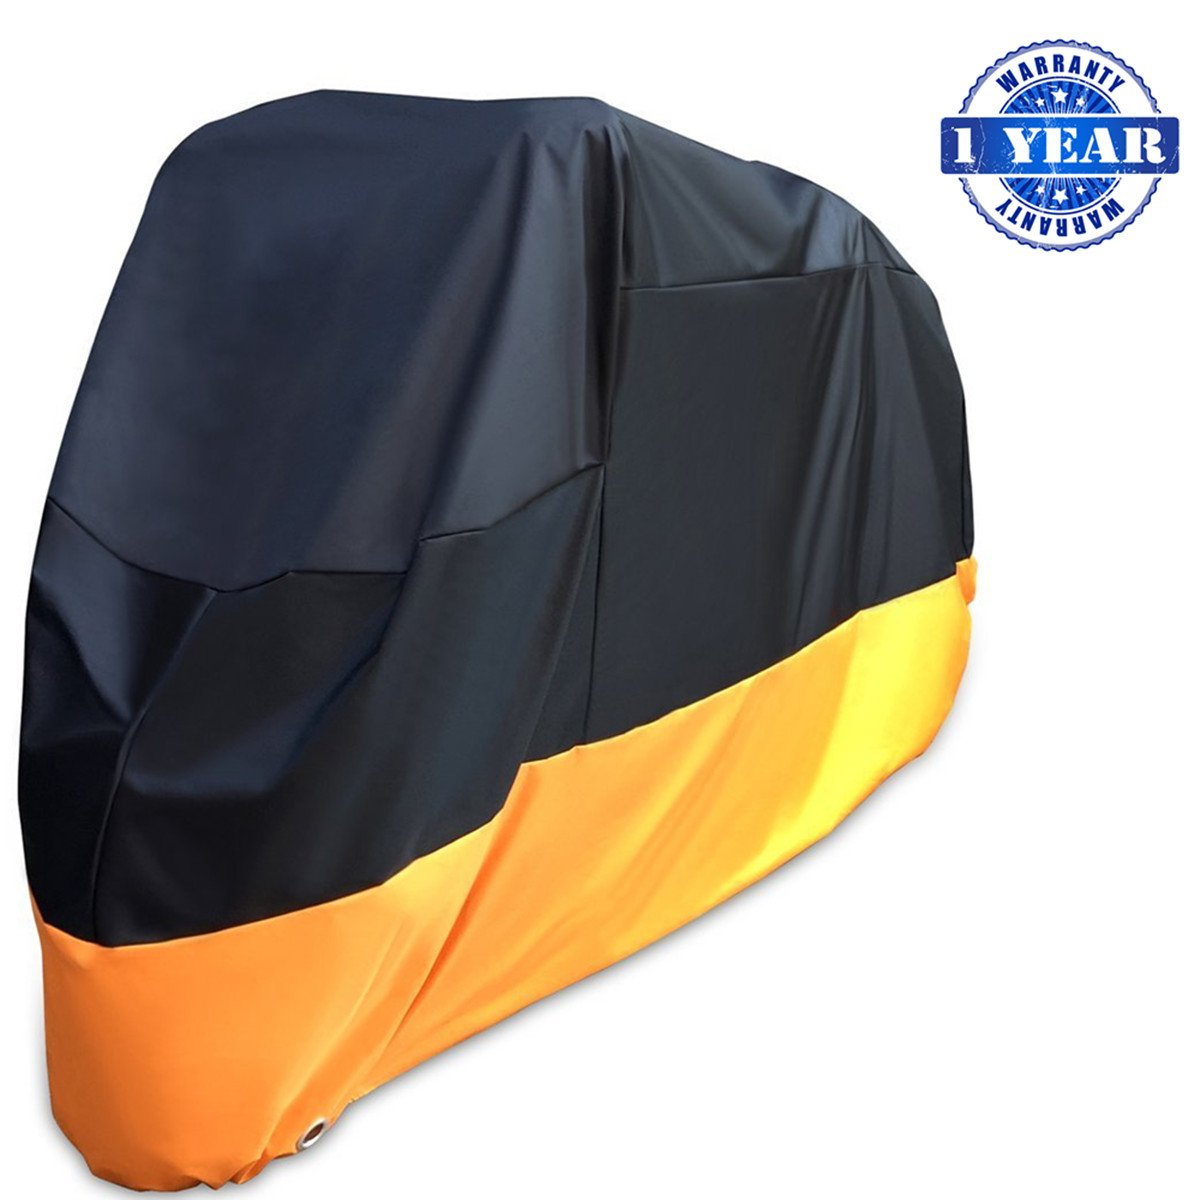 XYZCTEM Motorcycle Cover-All Season Waterproof Outdoor Protection - Precision Fit for 116 inch Tour Bikes, Choppers and Cruisers(XXXL,Black& Orange)-1 Year Warranty